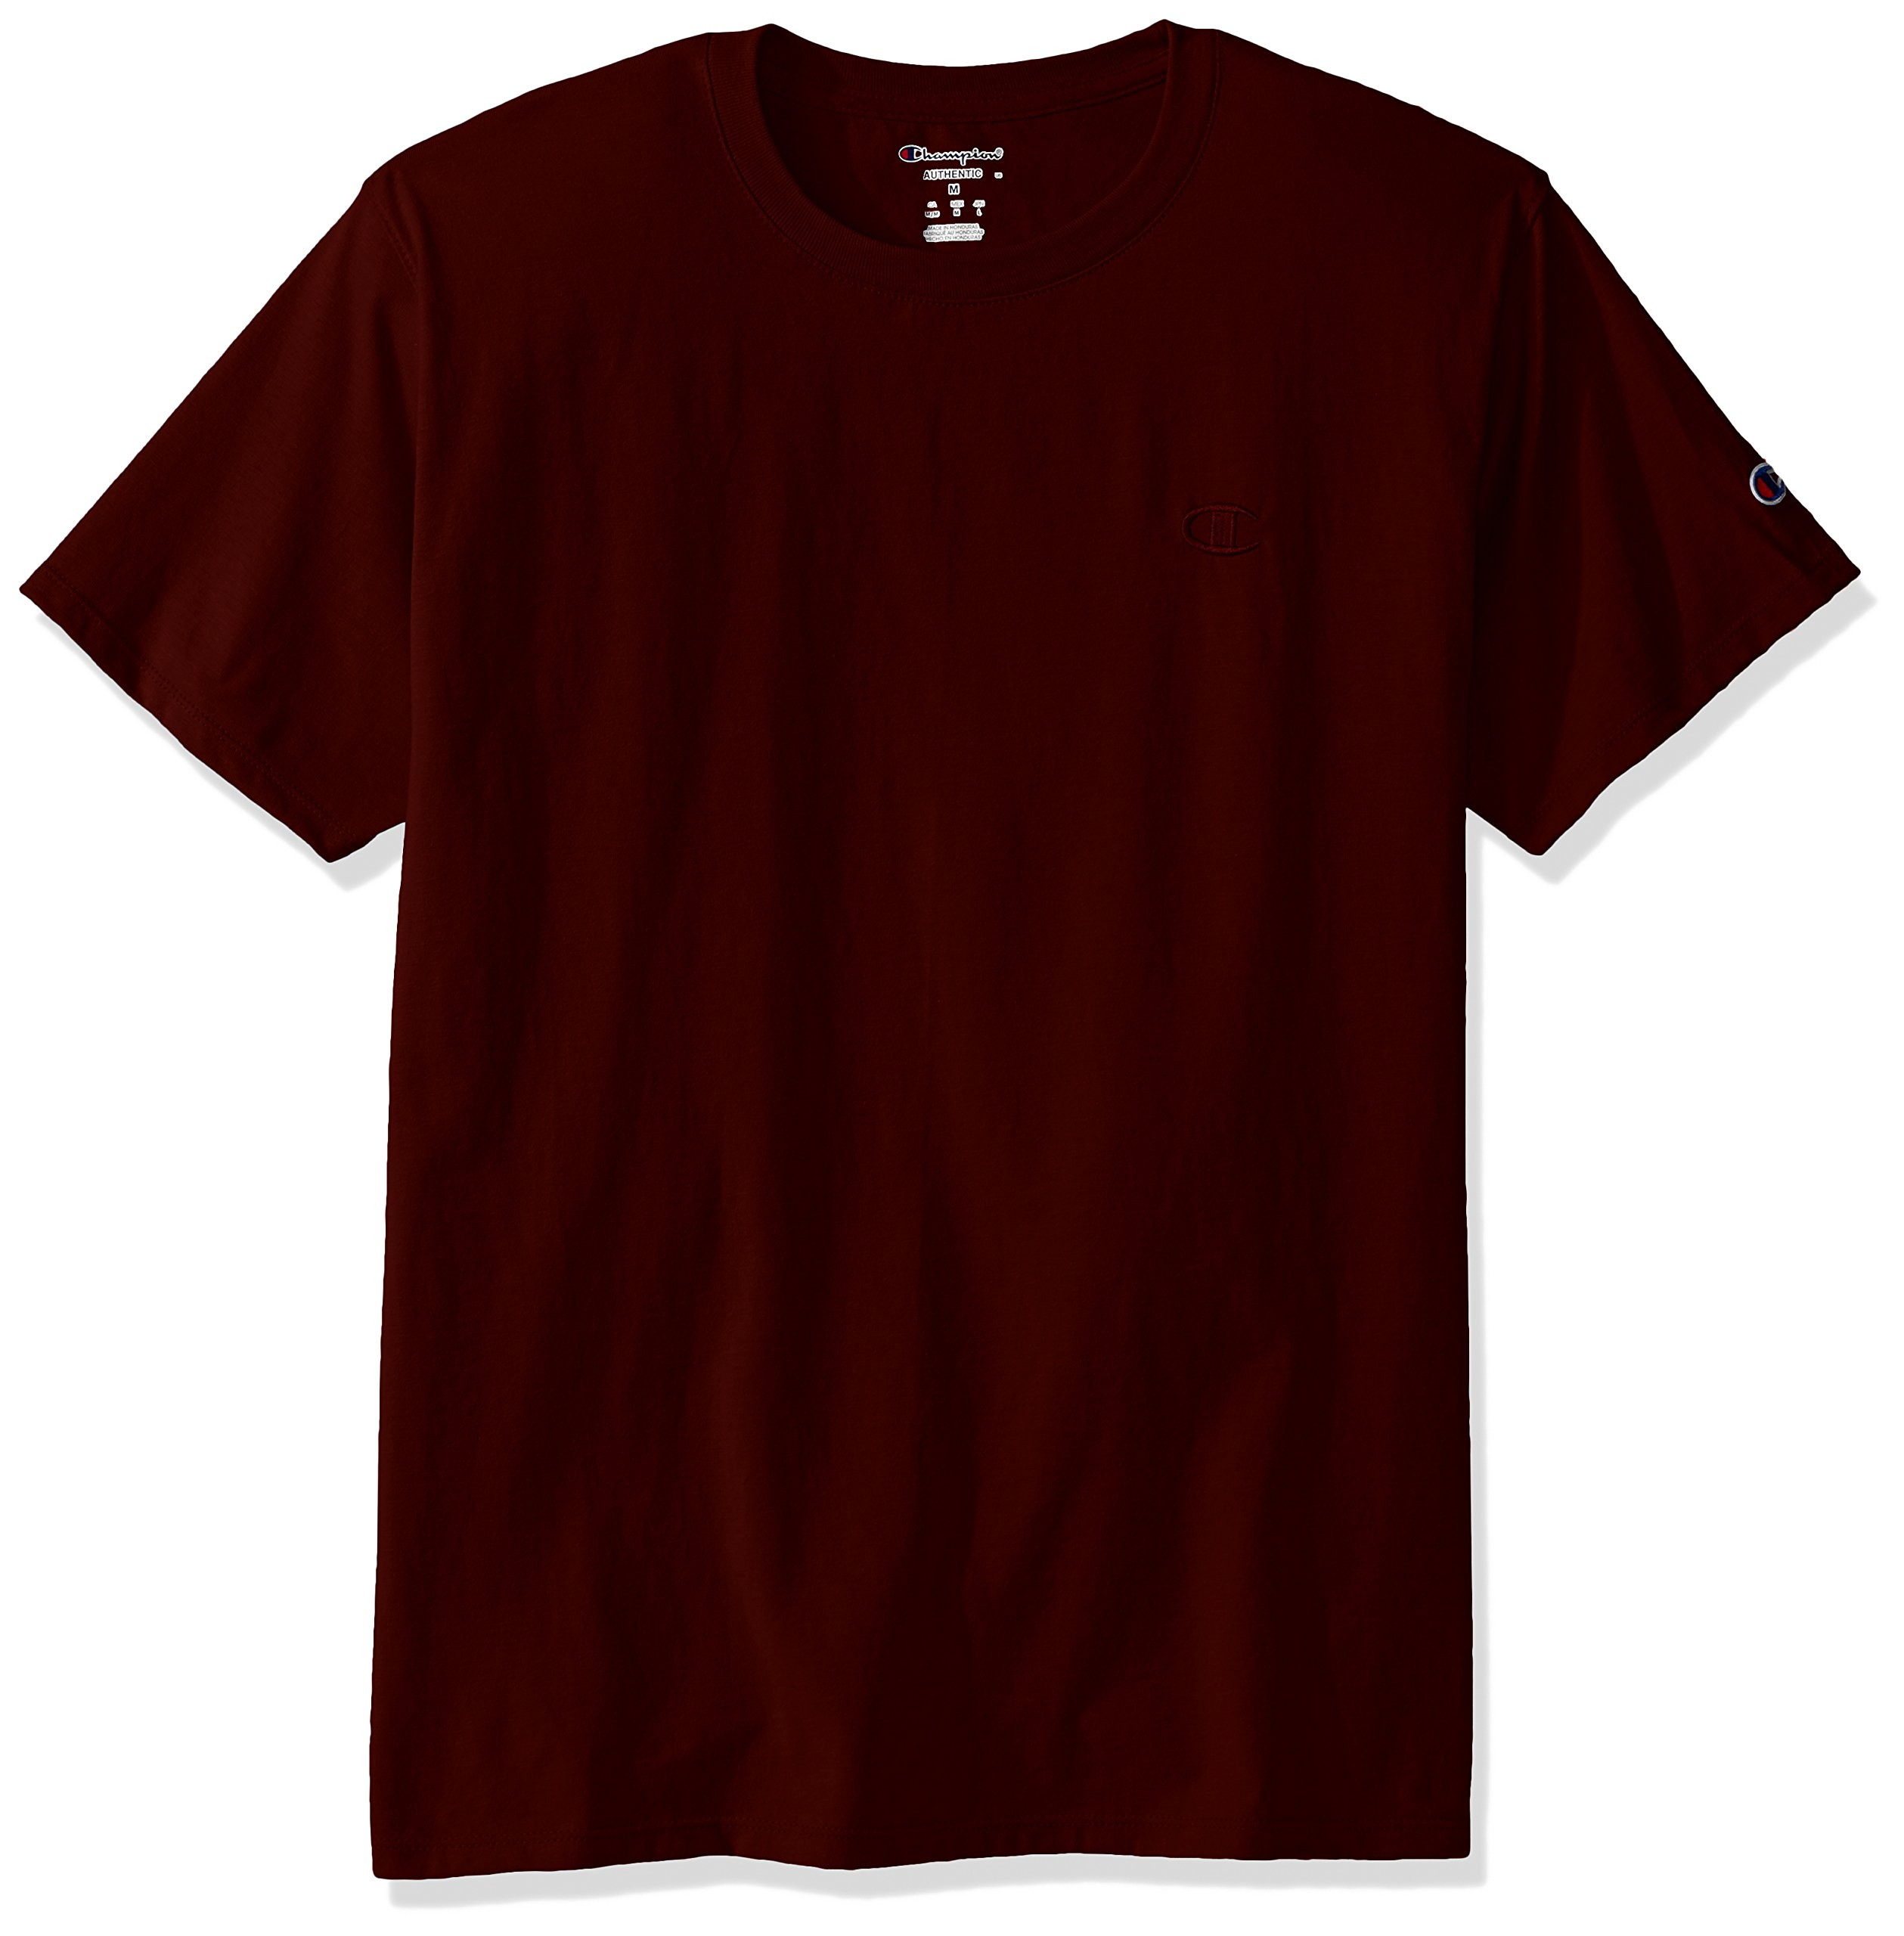 Champion Men's Classic Jersey T-Shirt, Maroon, 2XL by Champion